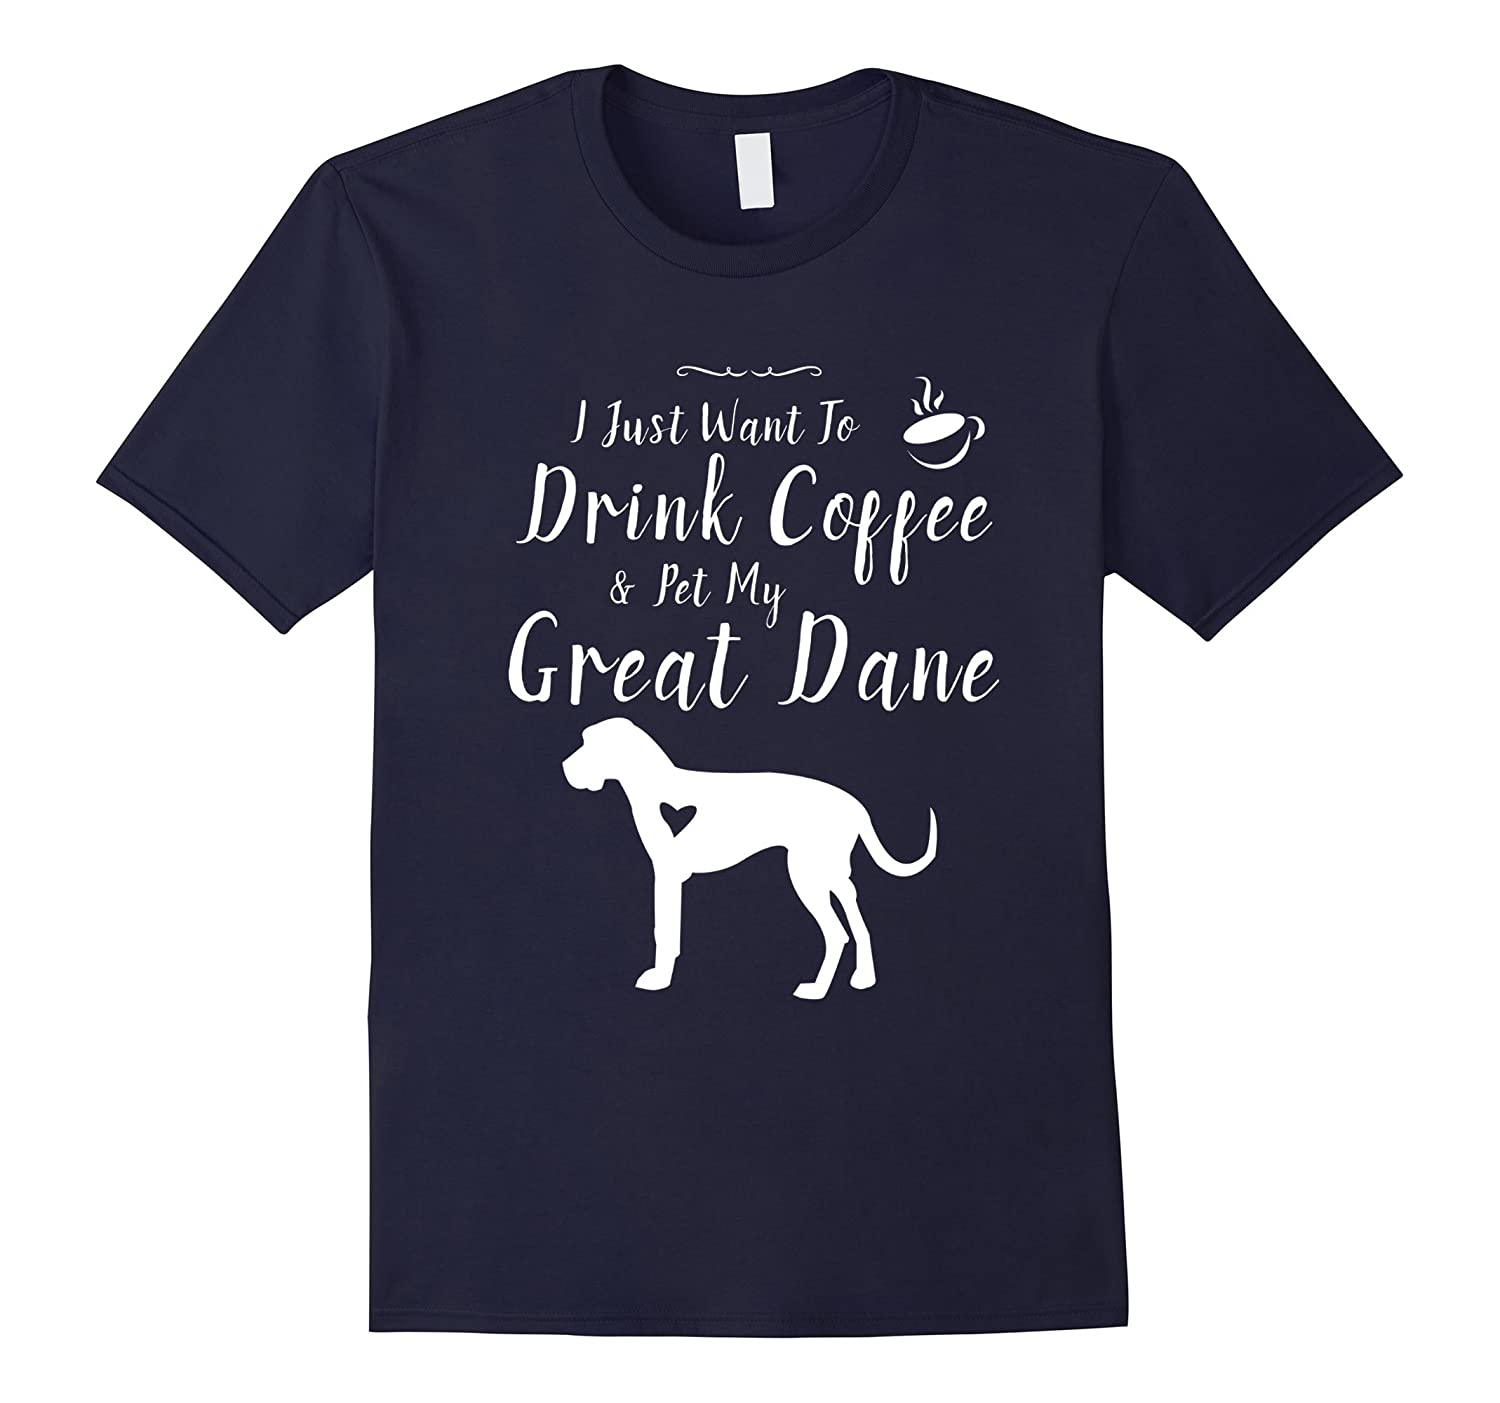 I Just Want To Drink Coffee & Pet My Great Dane - tshirt-Art